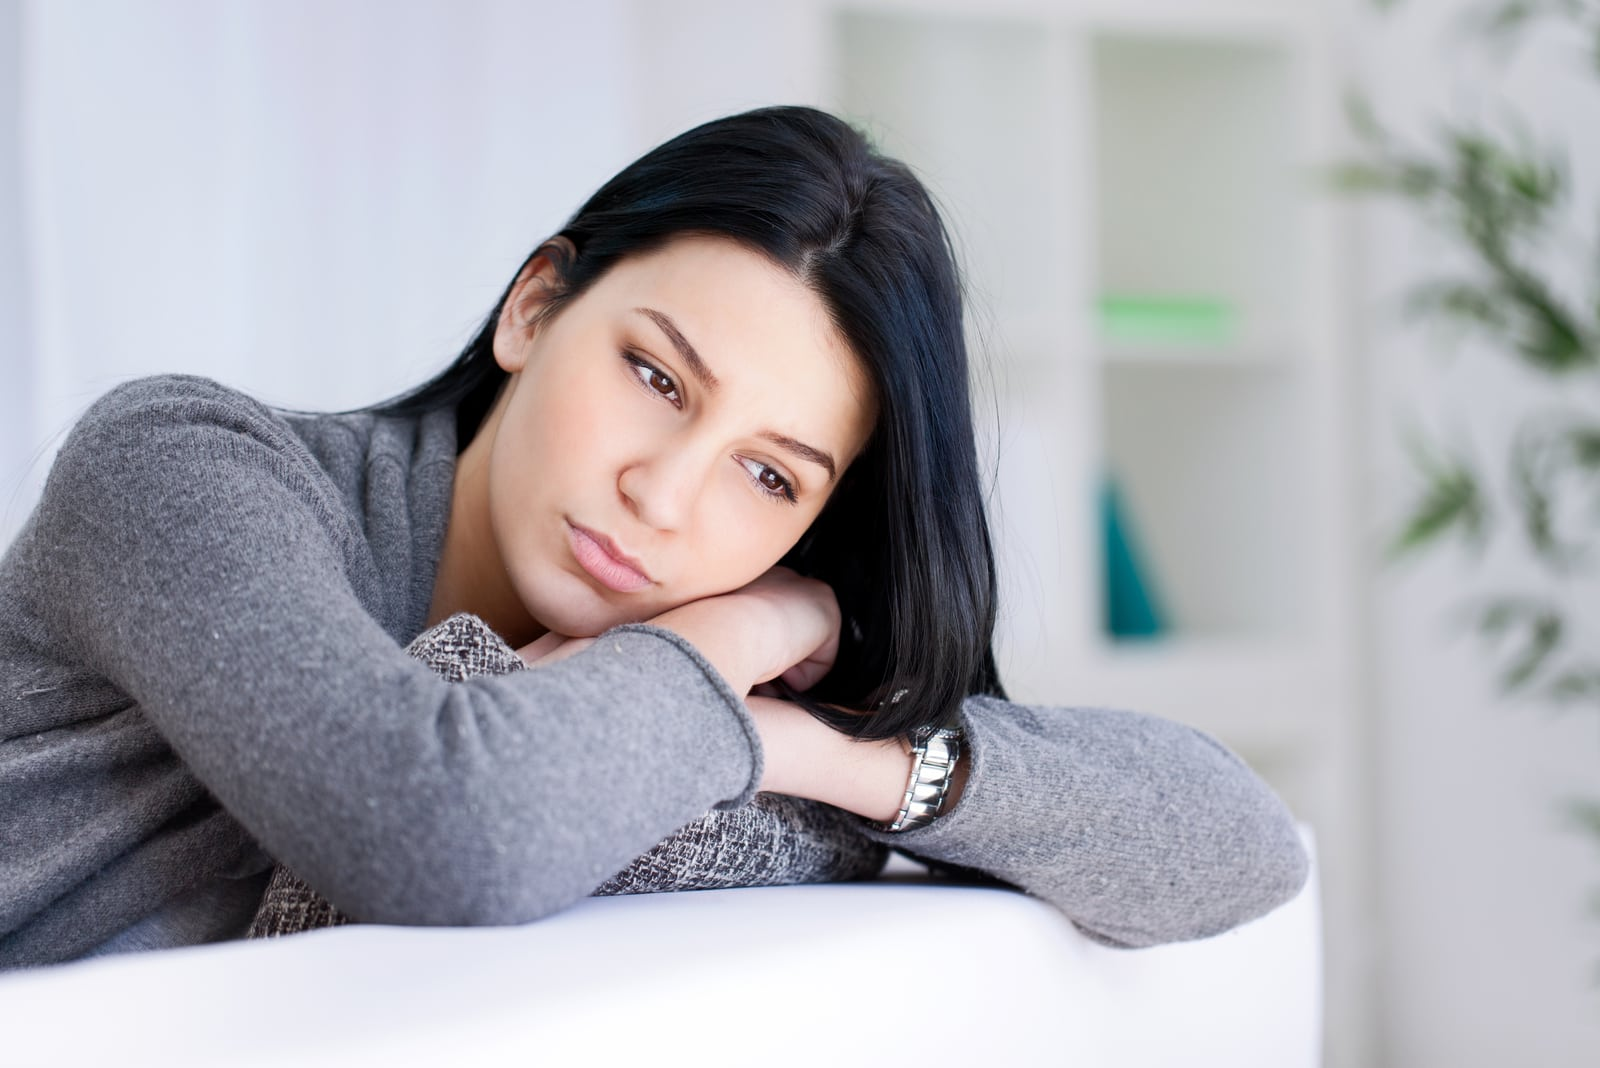 sad woman in deep minds sitting on the couch